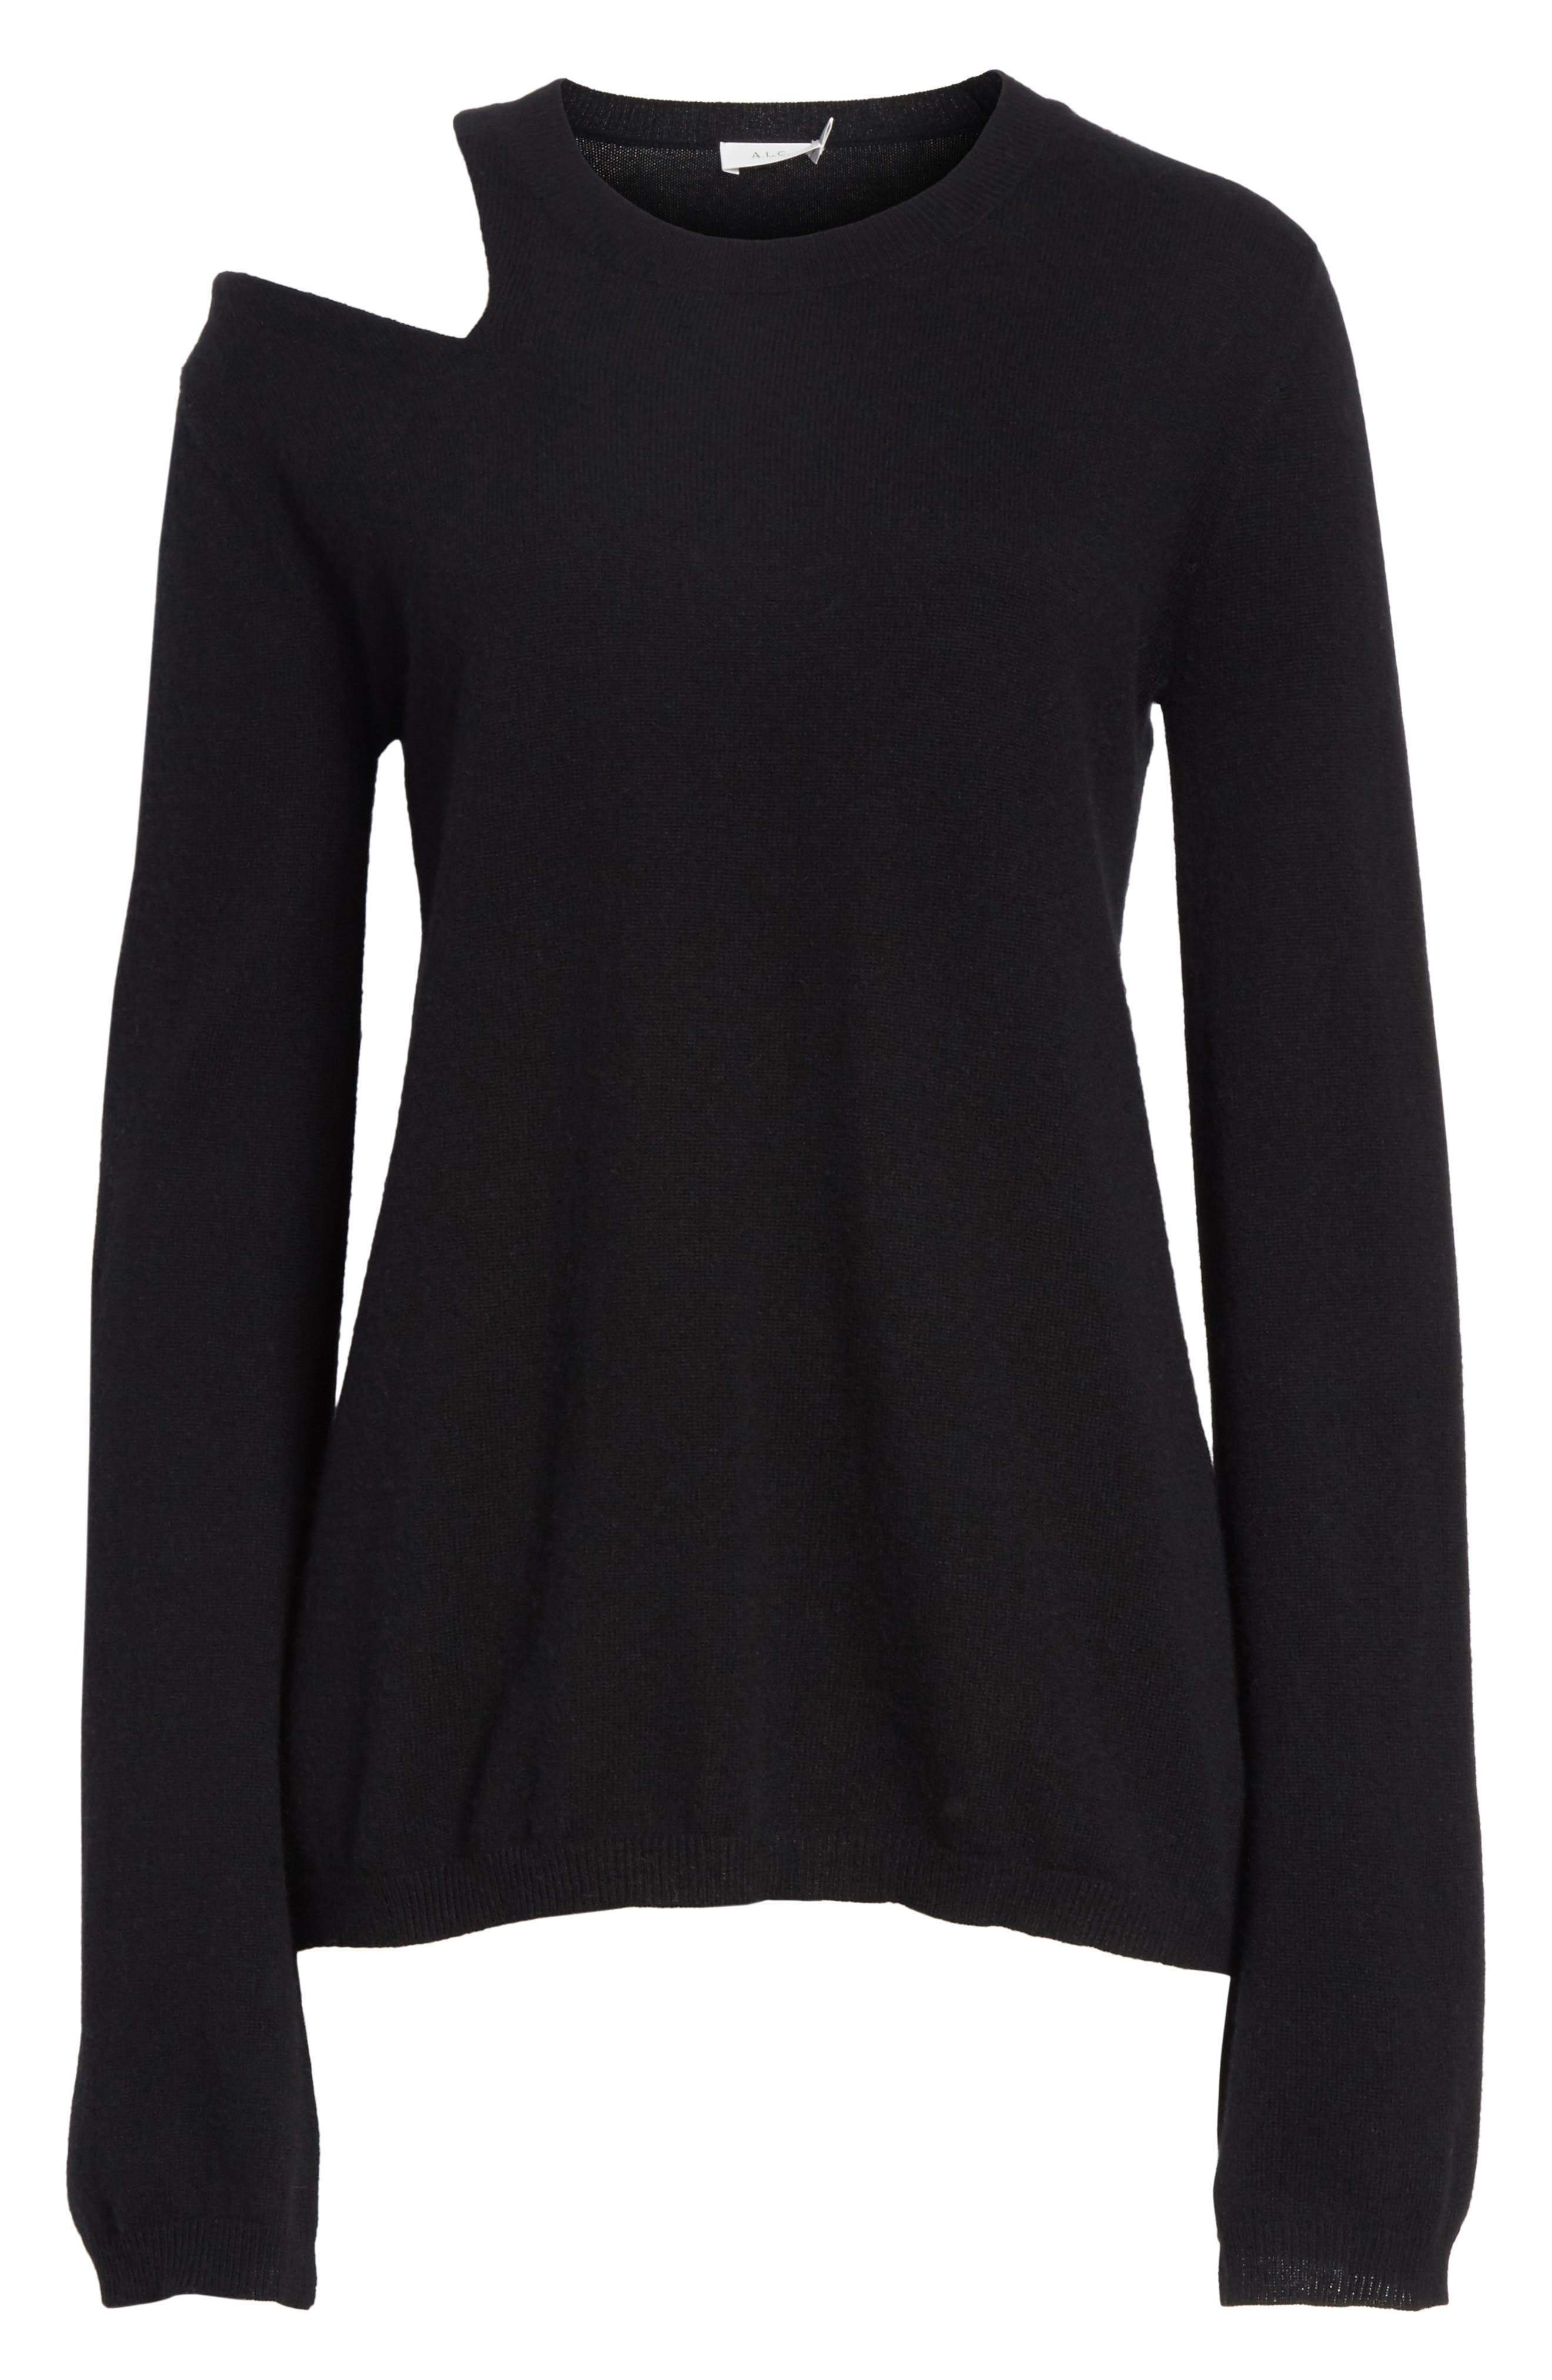 Hamilton Wool & Cashmere Sweater,                             Alternate thumbnail 6, color,